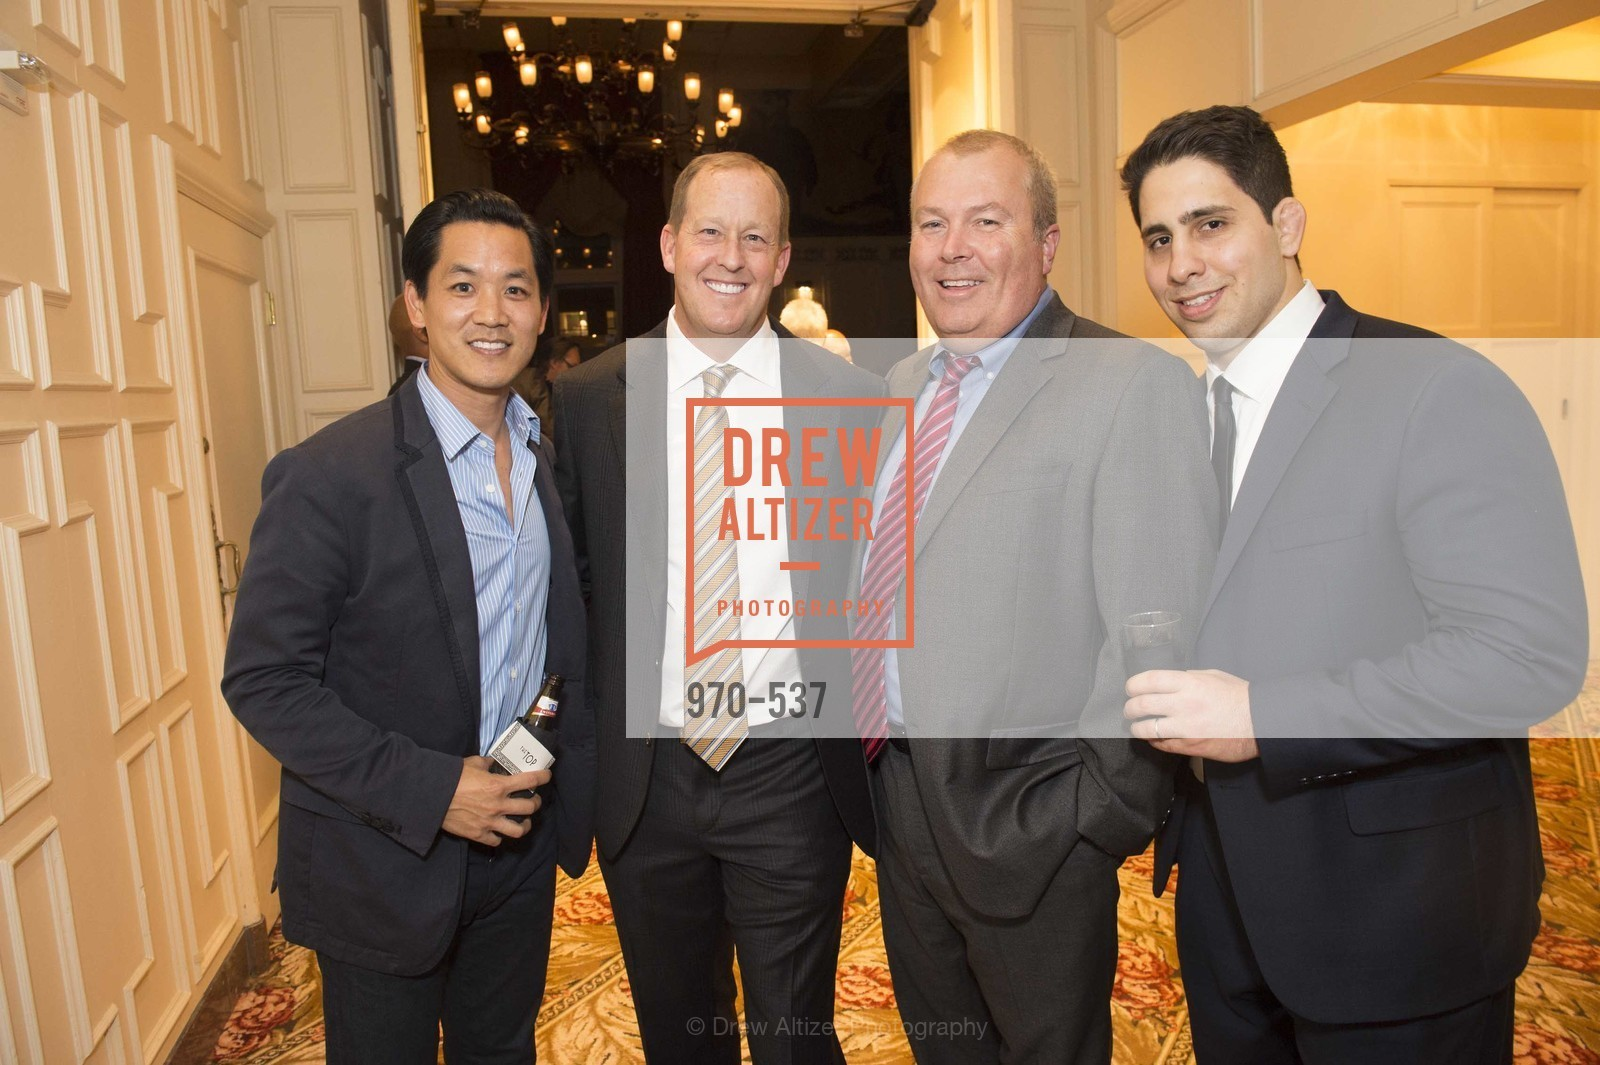 Michael Rosenfeld, Derek Smith, Lior Dimor, TOP OF THE MARK'S 75TH Anniversary Party, US, November 7th, 2014,Drew Altizer, Drew Altizer Photography, full-service agency, private events, San Francisco photographer, photographer california